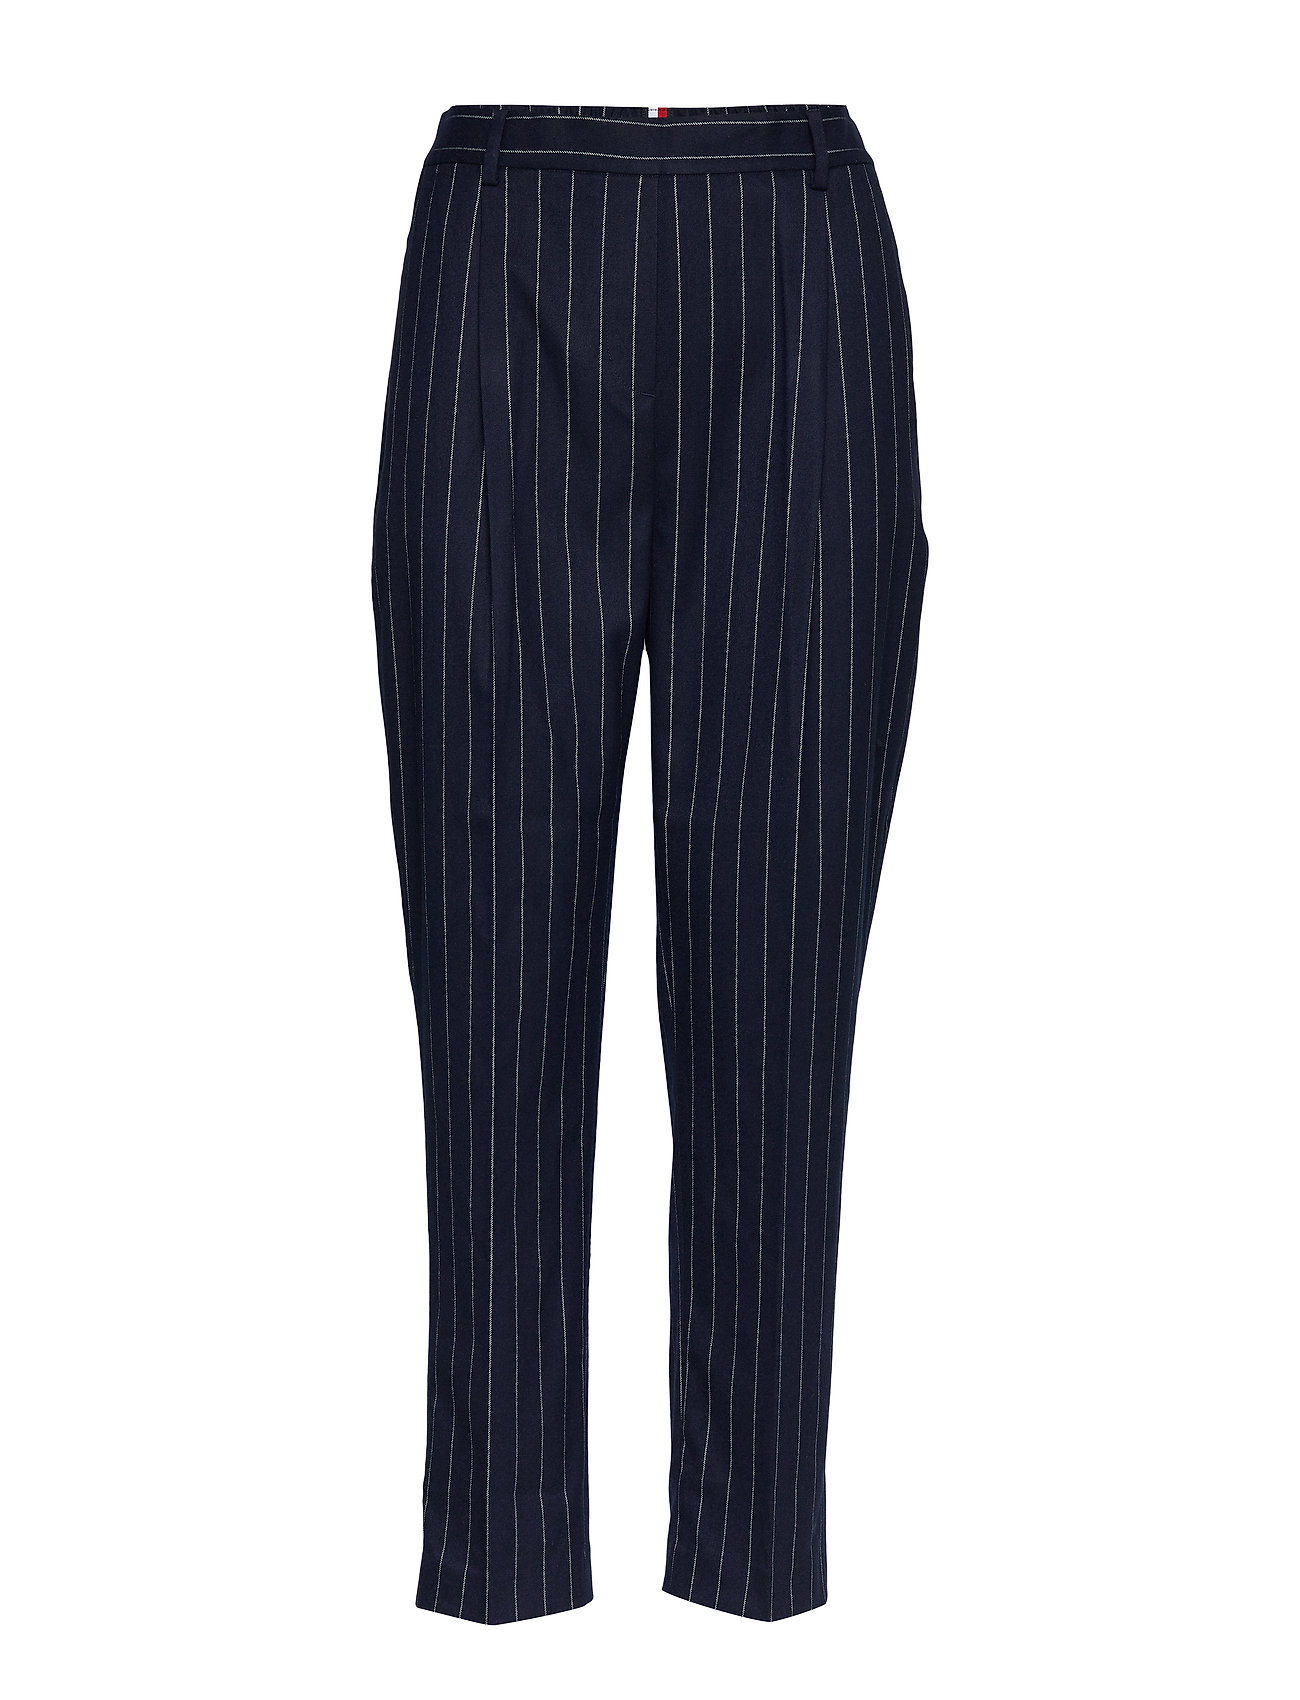 Tommy Hilfiger FRANKIE PULL ON PANT - PIN STRIPE SKY CAPTAIN